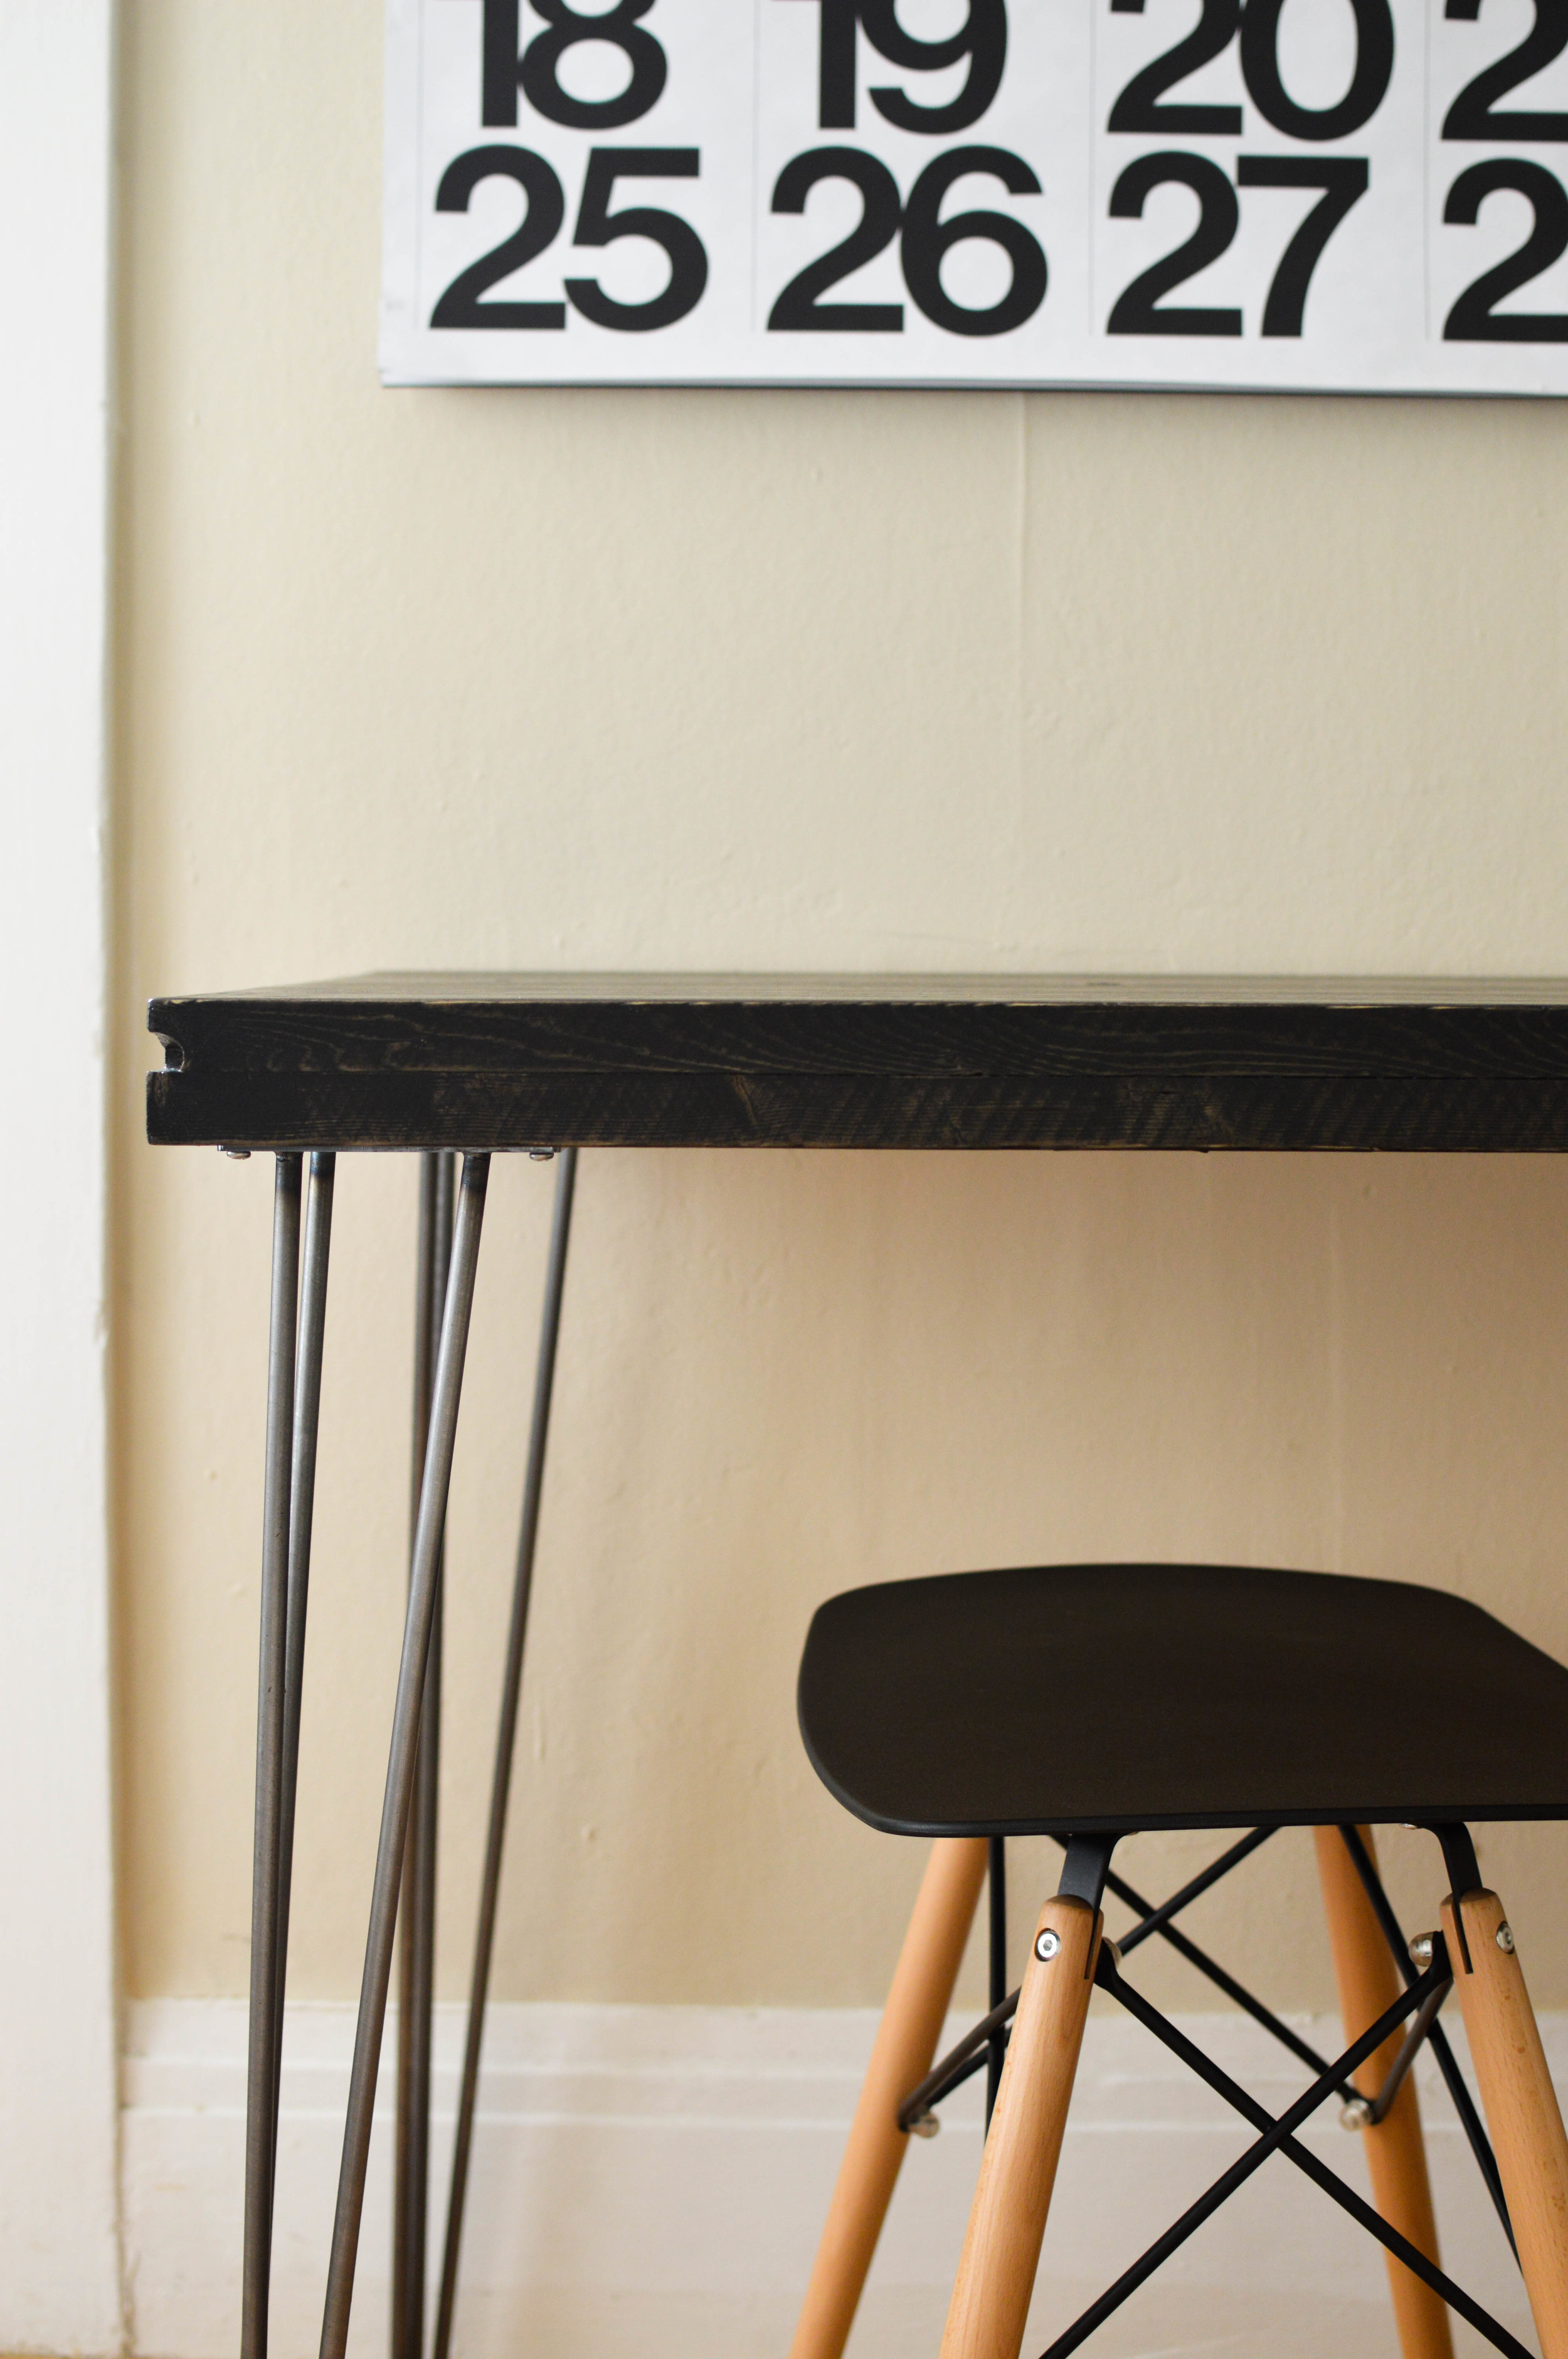 Swap your regular table legs for hairpin legs for a modern look